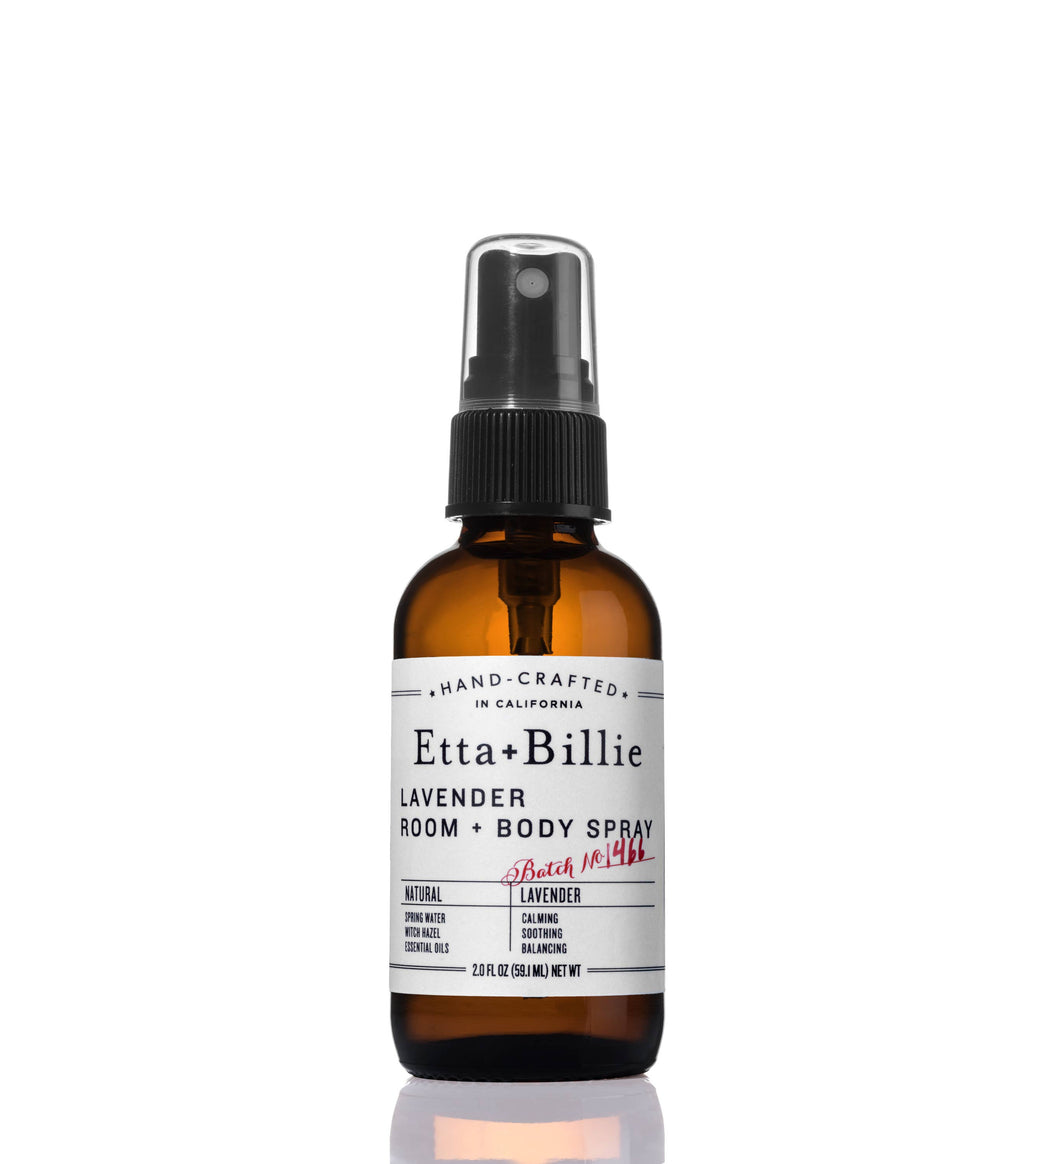 Etta + Billie - Lavender Room + Body Spray 2oz